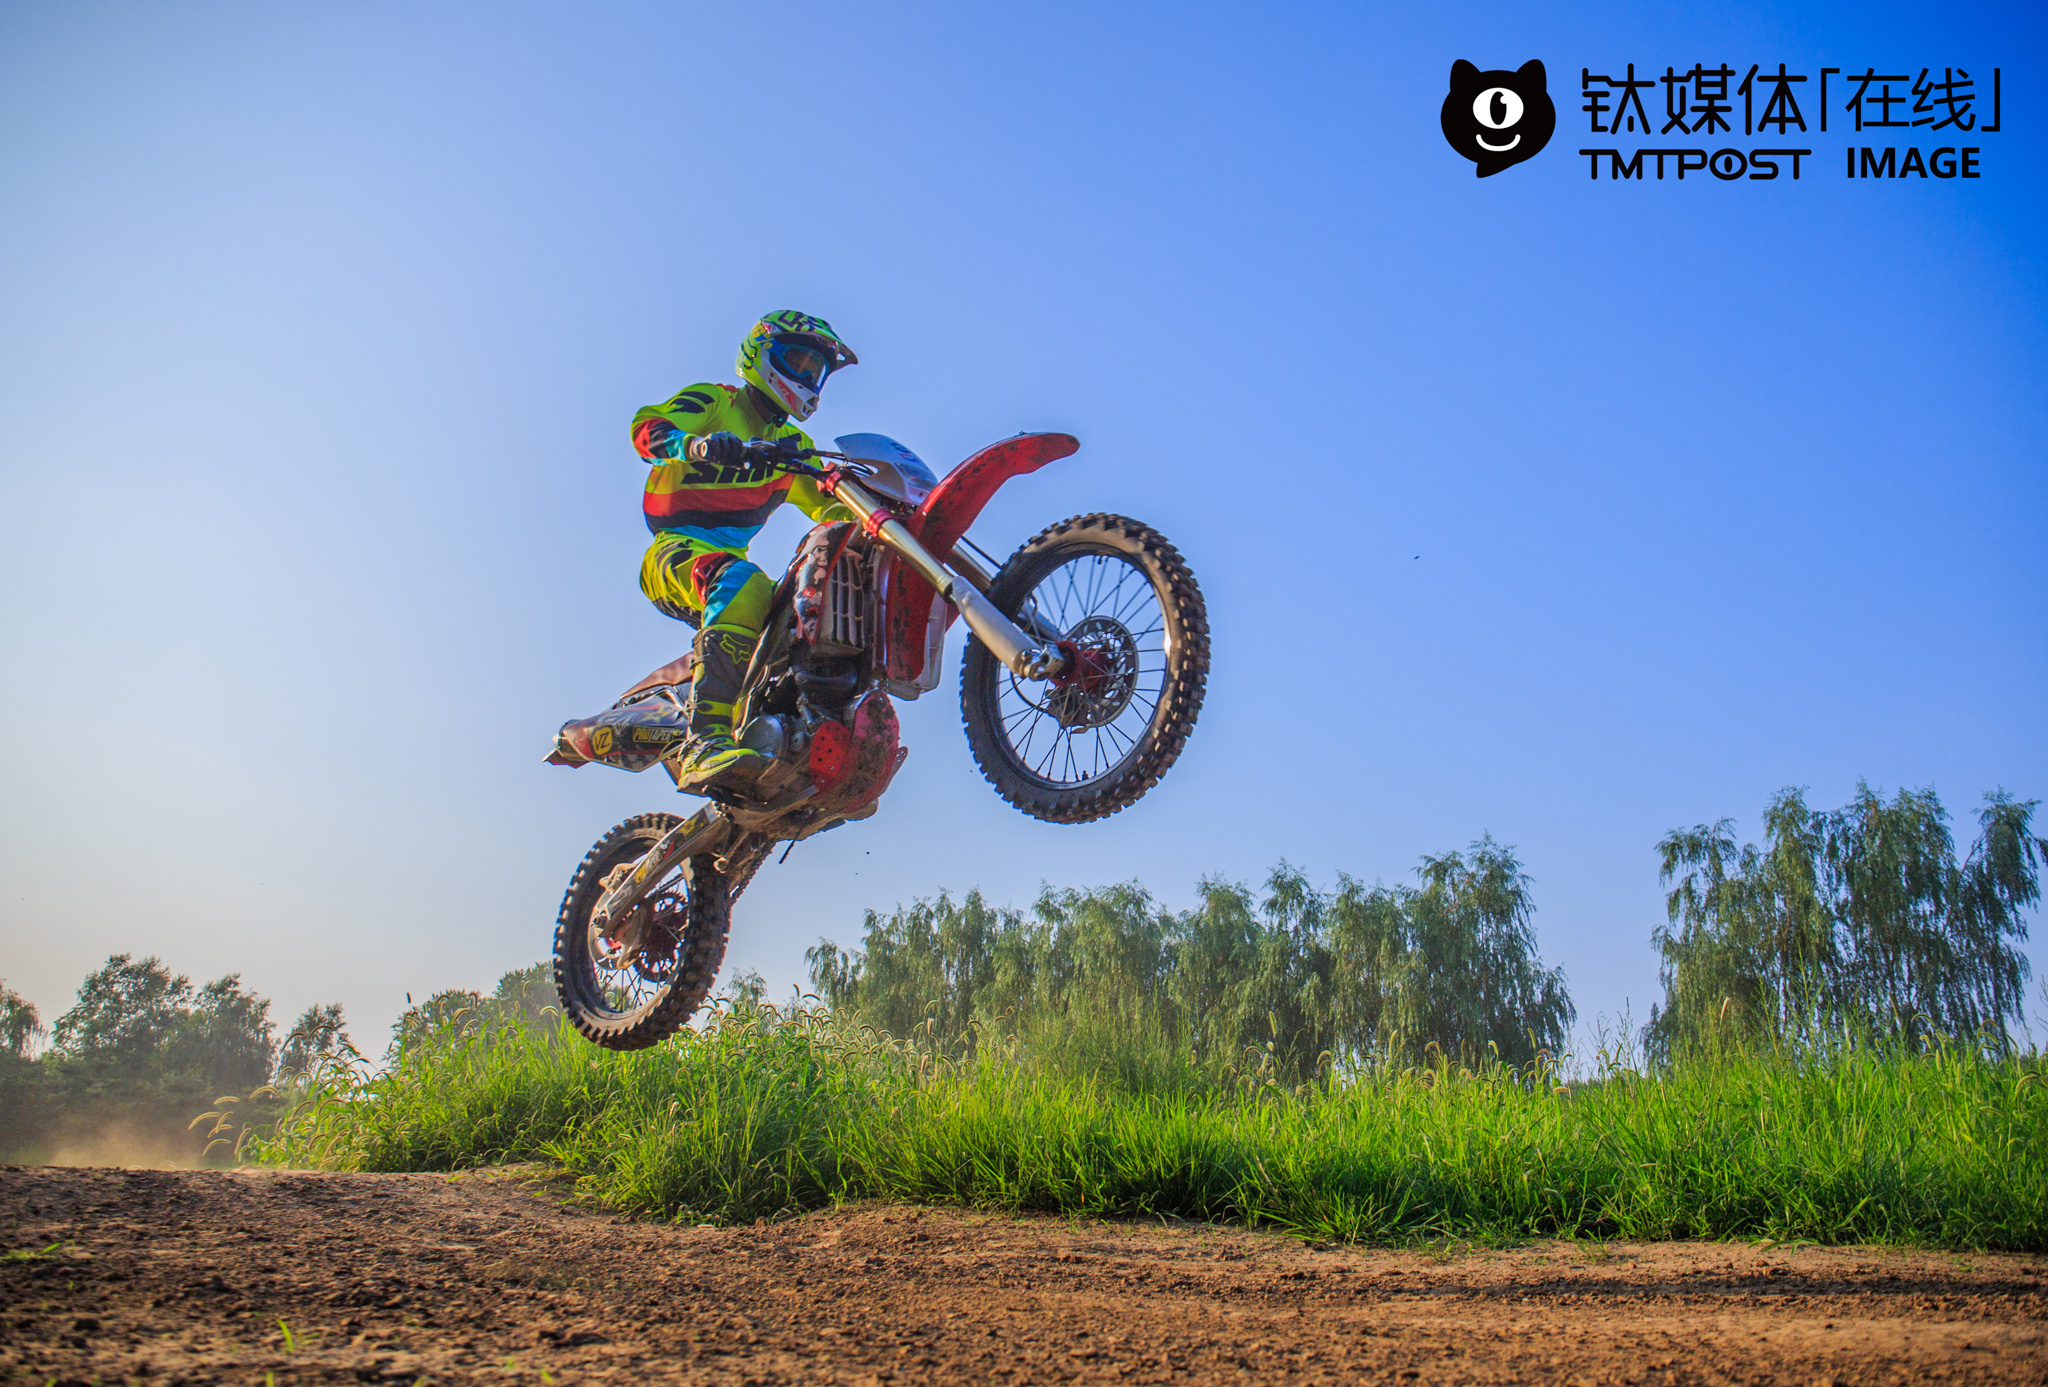 """Racecar driver Sun Jin was training off-road riding on a circuit in suburban Beijing in the above picture. To strengthen his physical endurance and get better prepared for the racecar match to be held at the end of August, he rode for at least 100 rounds every time he trained. """"Riding motorcycles costs more money than what's earned. For one thing, race motorcycle circuit rental fee is high. There aren't many motorcycle circuits in China, so it could be quite expensive to rent motorcycle circuits. For another, it's expensive to fix racecars. On average, three tyres burst after each match. It costs me over 10,000 ($1,507) to replace them. In addition, the application fee is usually a couple thousand yuan, and I have to fix and maintain motorcycles, let alone the fuel cost. In total, I have to pay 20,000 yuan (around $3,014) for each match,"""" he explained, """"I started riding motorcycles nearly a decade ago, and I can no longer remember how many matches I've already participated in. However, even if I win in these matches, I can only get a trophy, not bonus. So I ride just for fun. When riding motorcycles, I feel as if I am the ruler of the world."""" He also ran a motorcycle repair store around the circuit."""